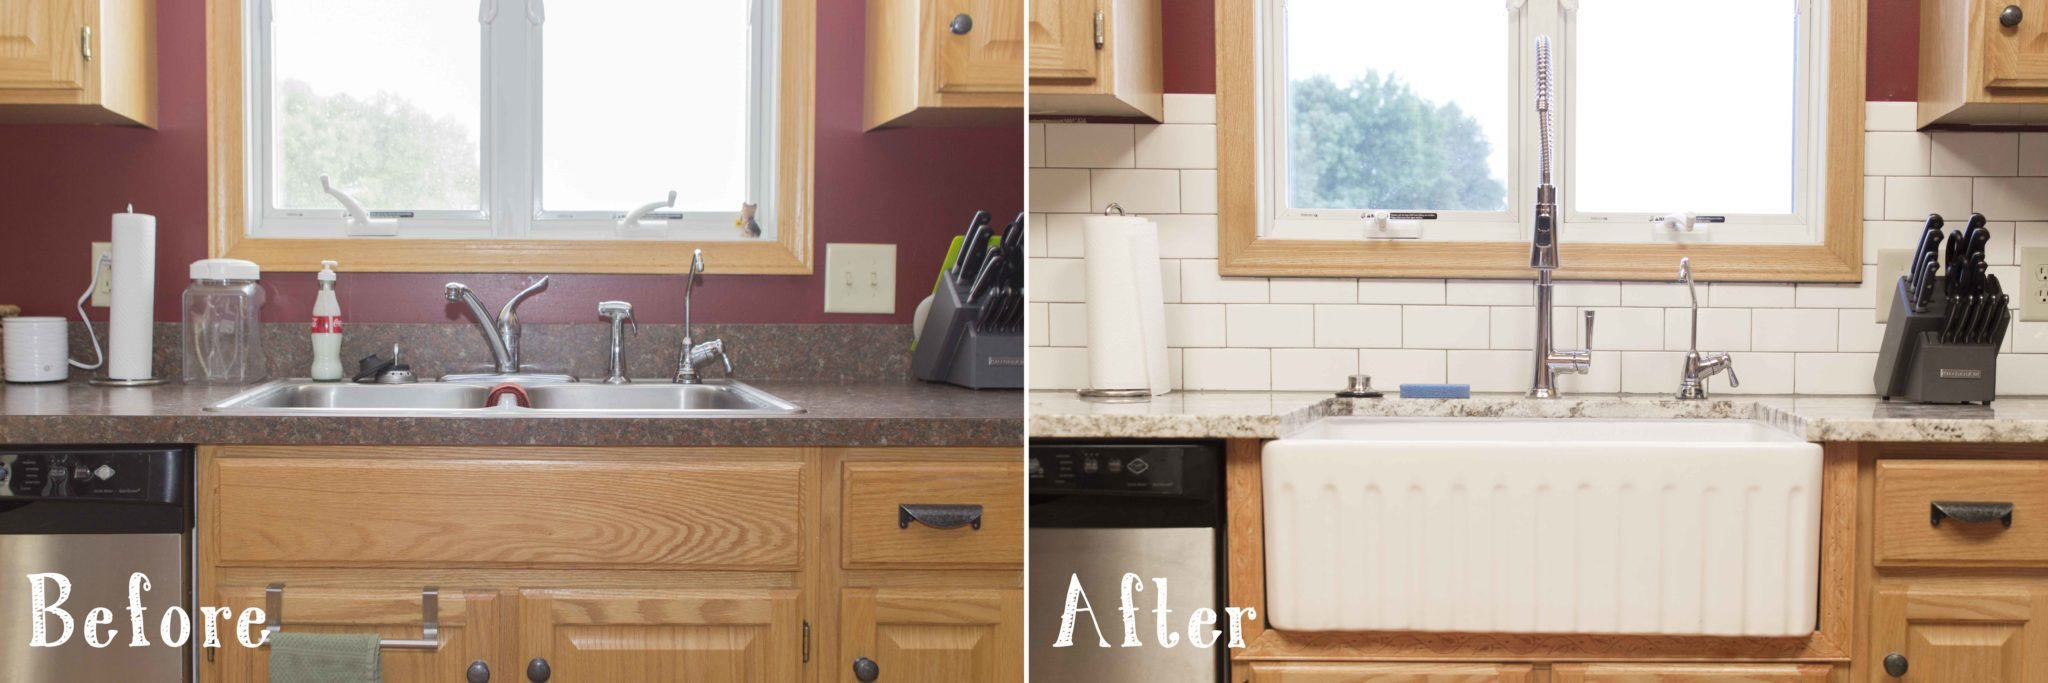 How To Install A Fireclay Farmhouse Kitchen Sink The Wheatley Fireclay Sink Sinkology